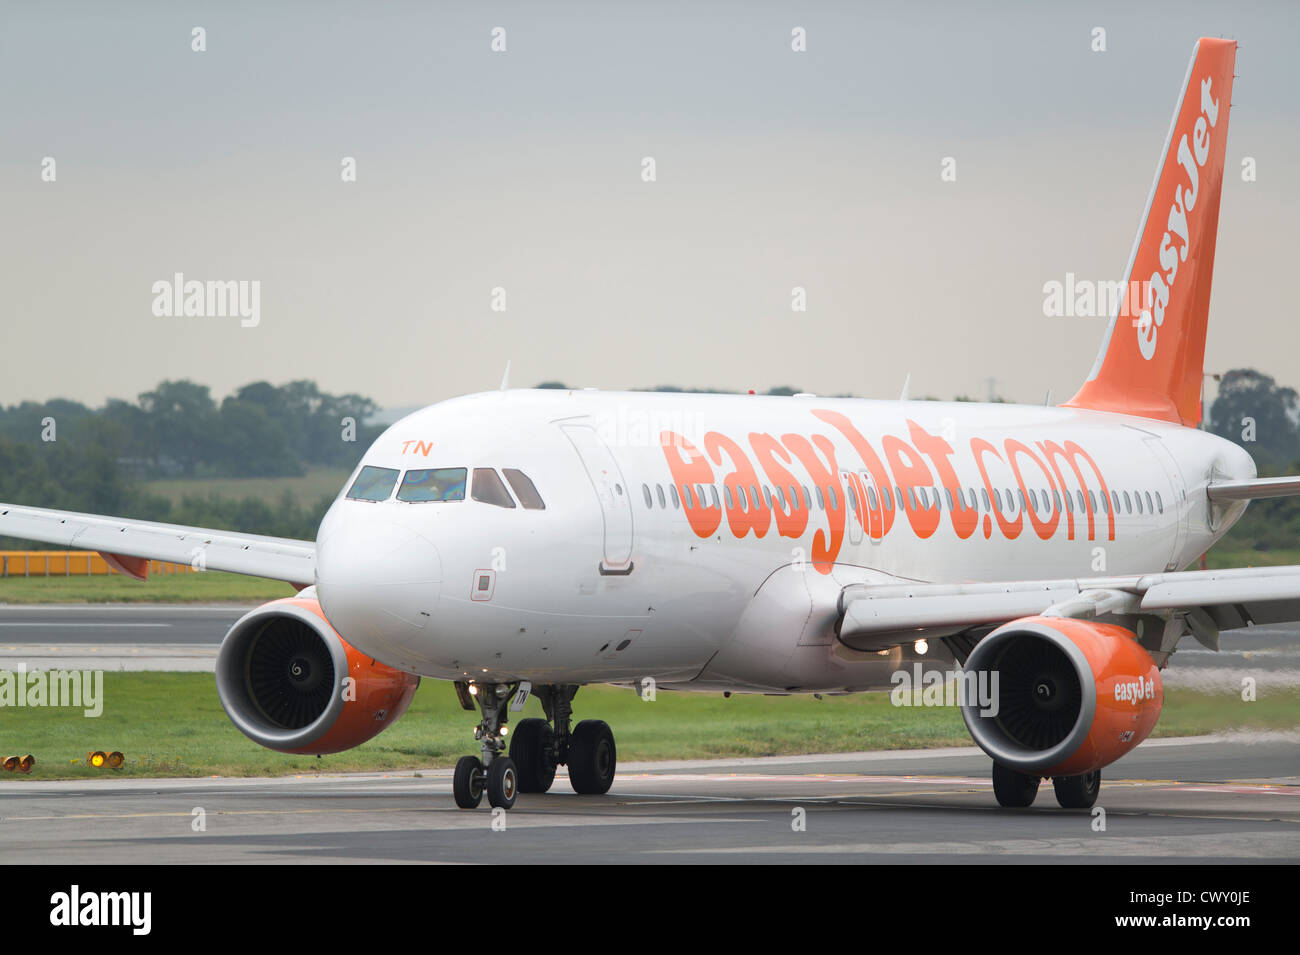 A EasyJet Airbus A319 taxiing on the runway of Manchester International Airport (Editorial use only) - Stock Image